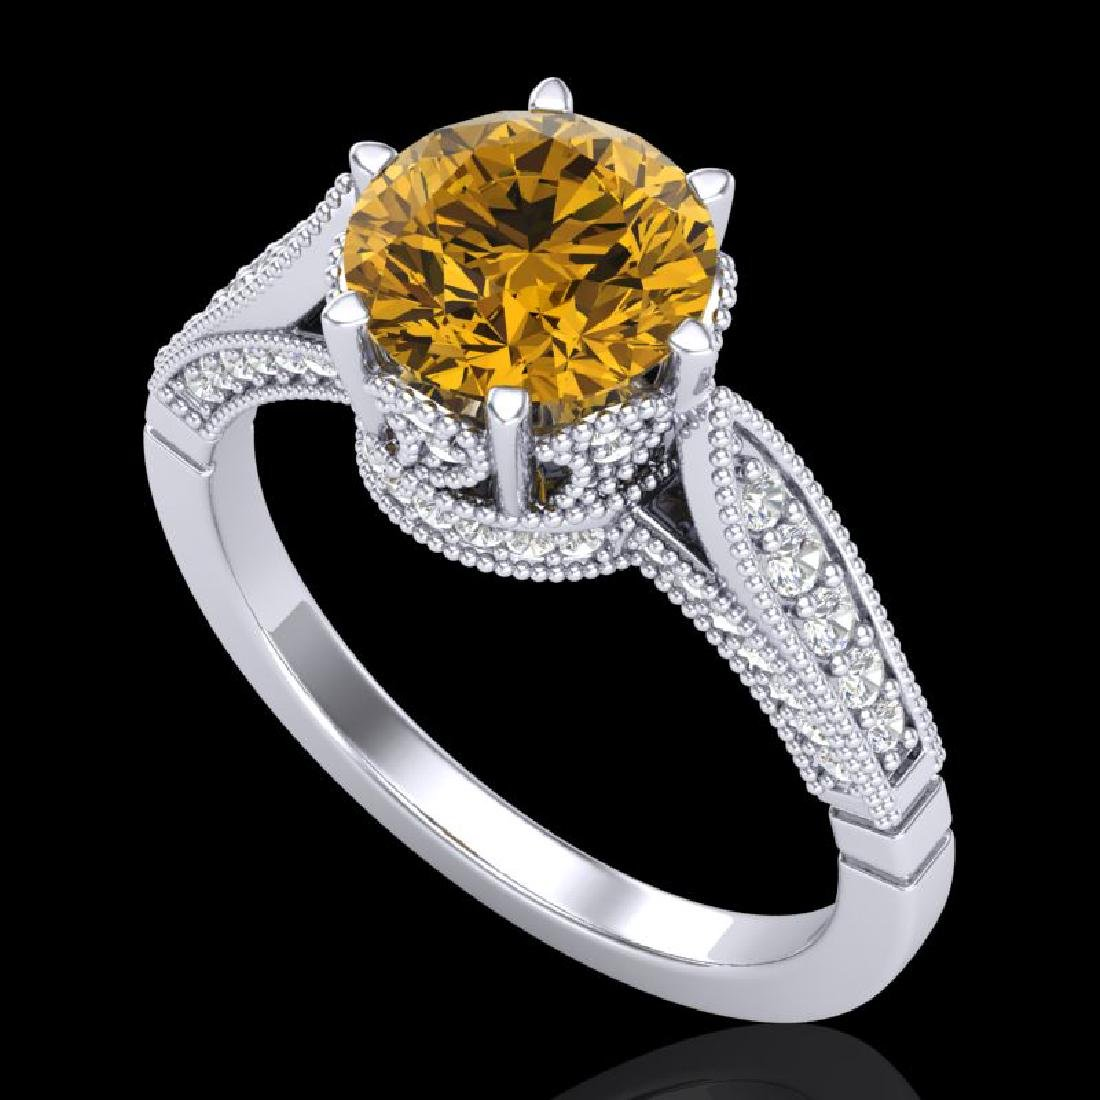 2.2 CTW Intense Fancy Yellow Diamond Engagement Art